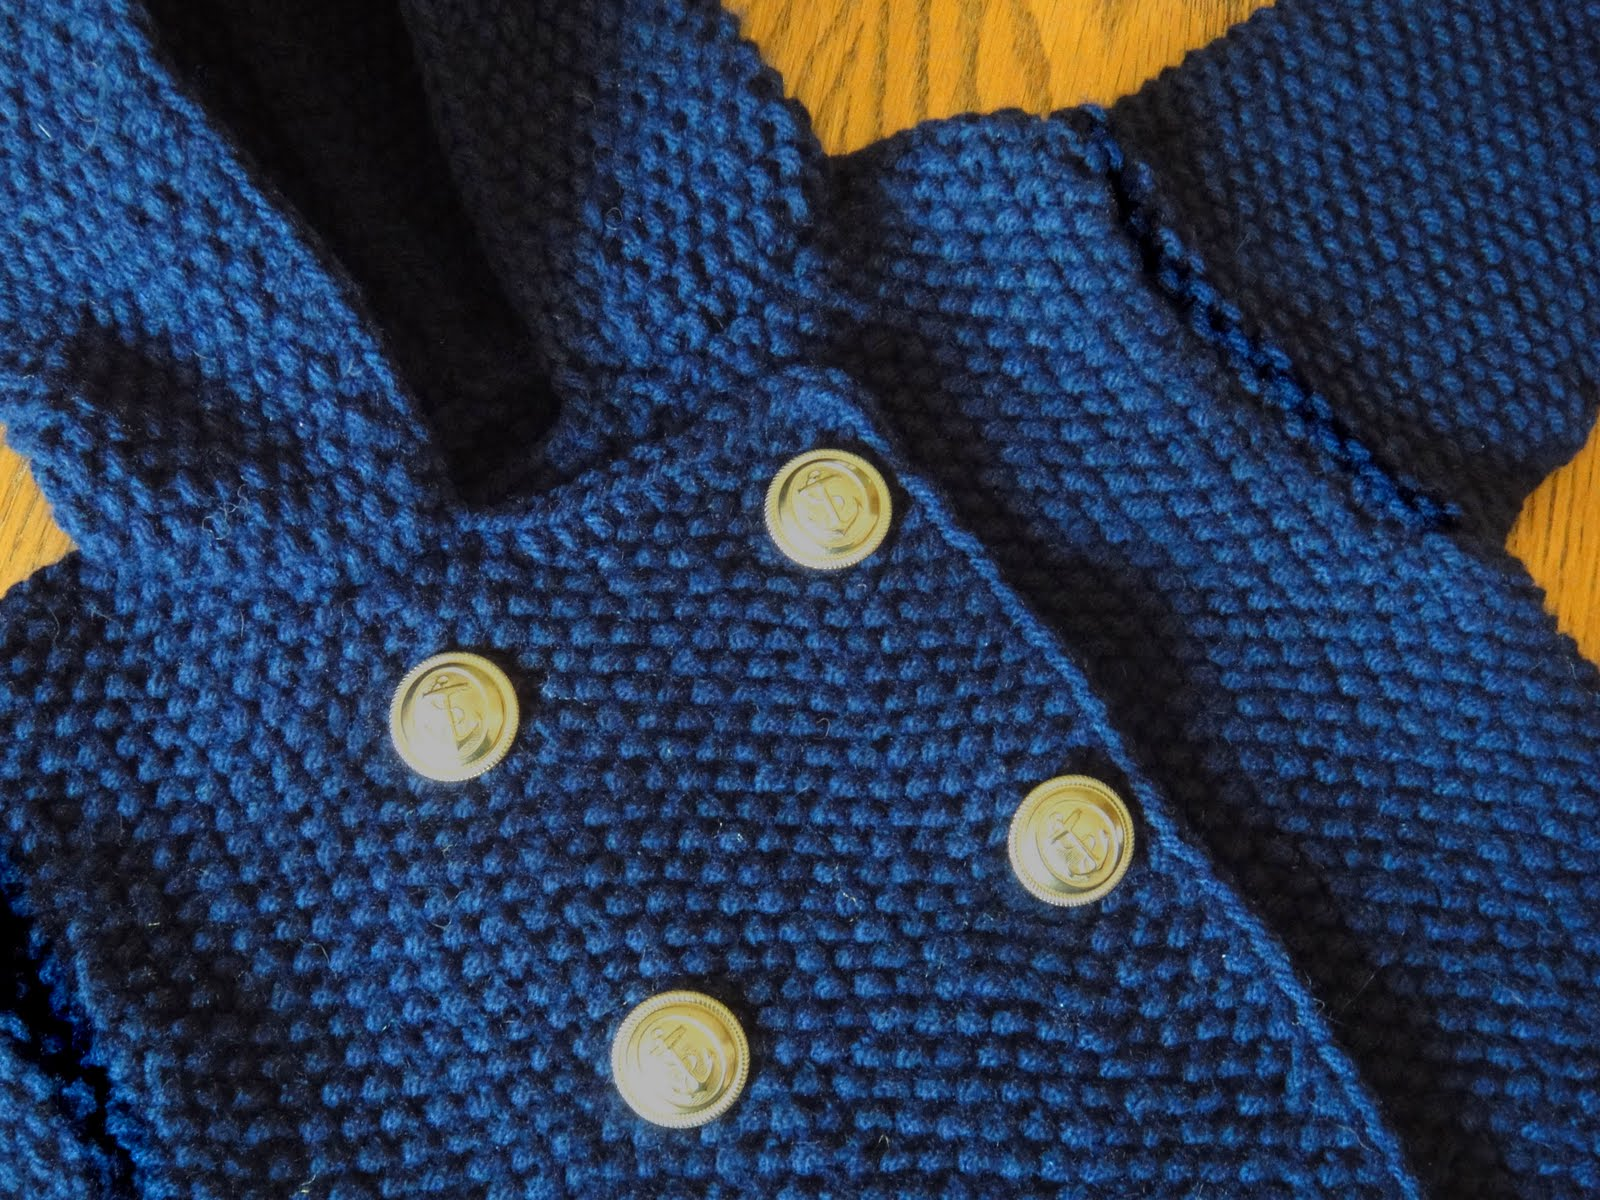 Instructions for Crocheting Golf Head Covers | eHow.com